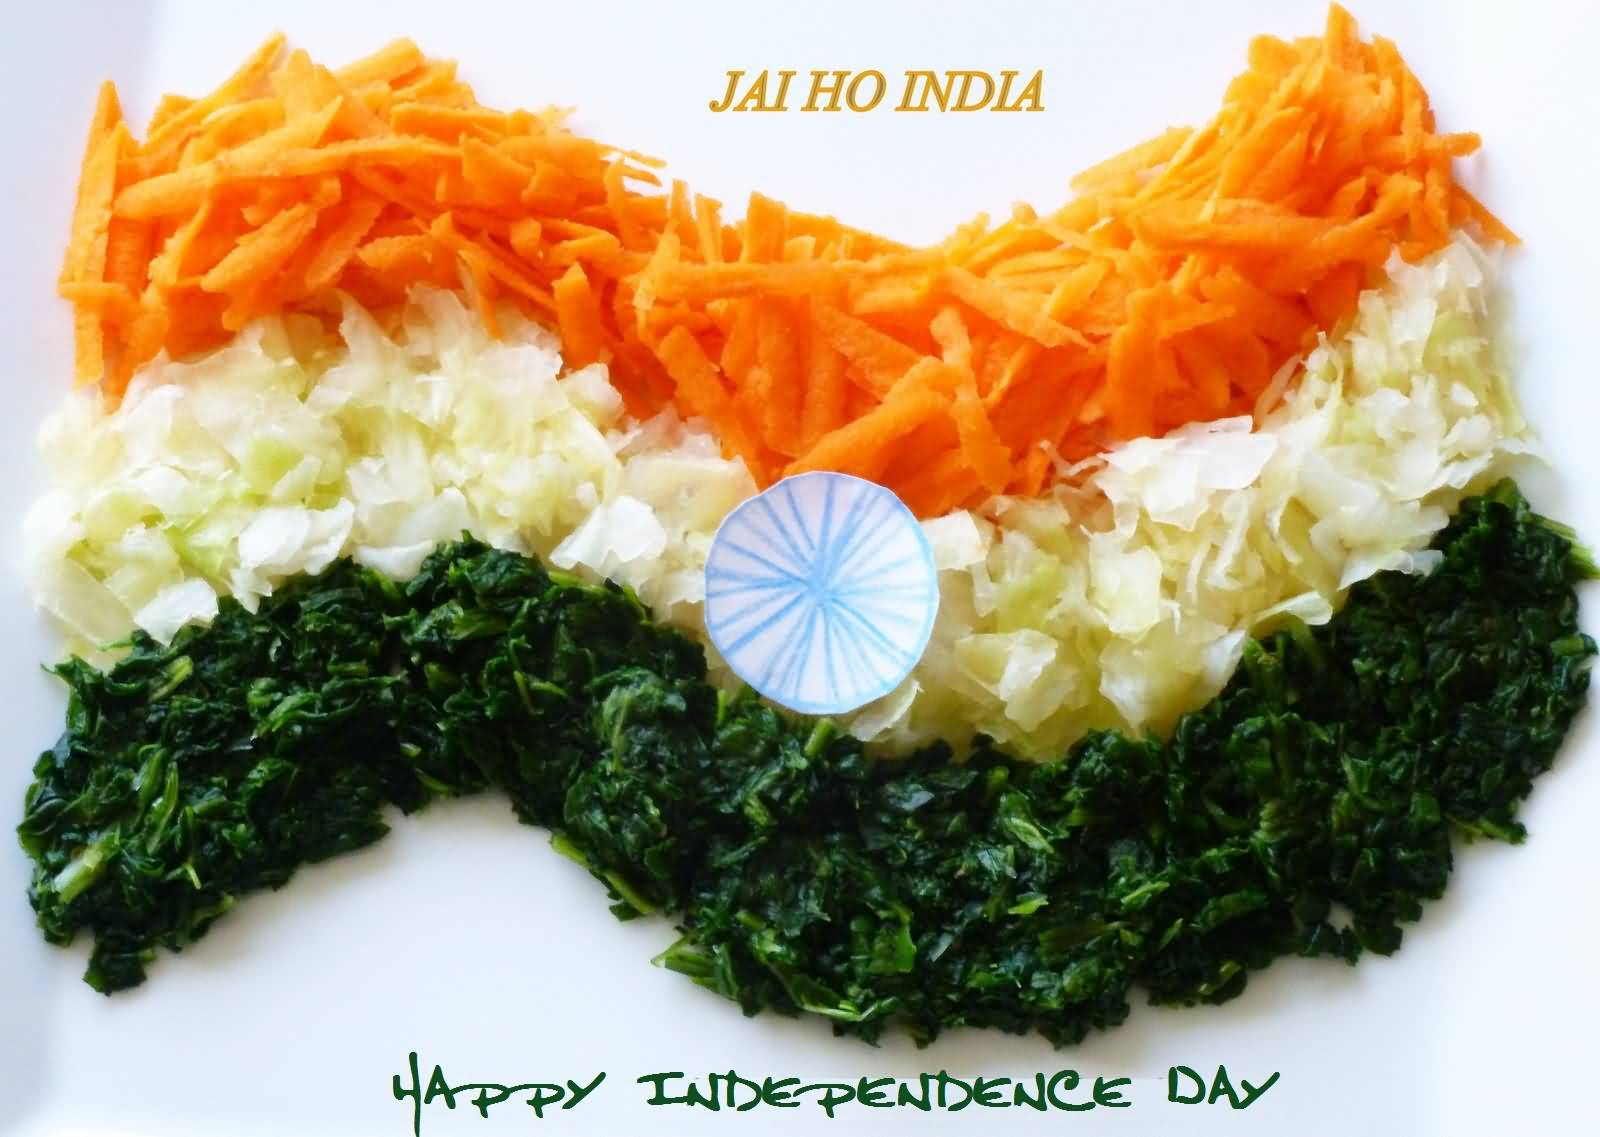 independence day of india - photo #4